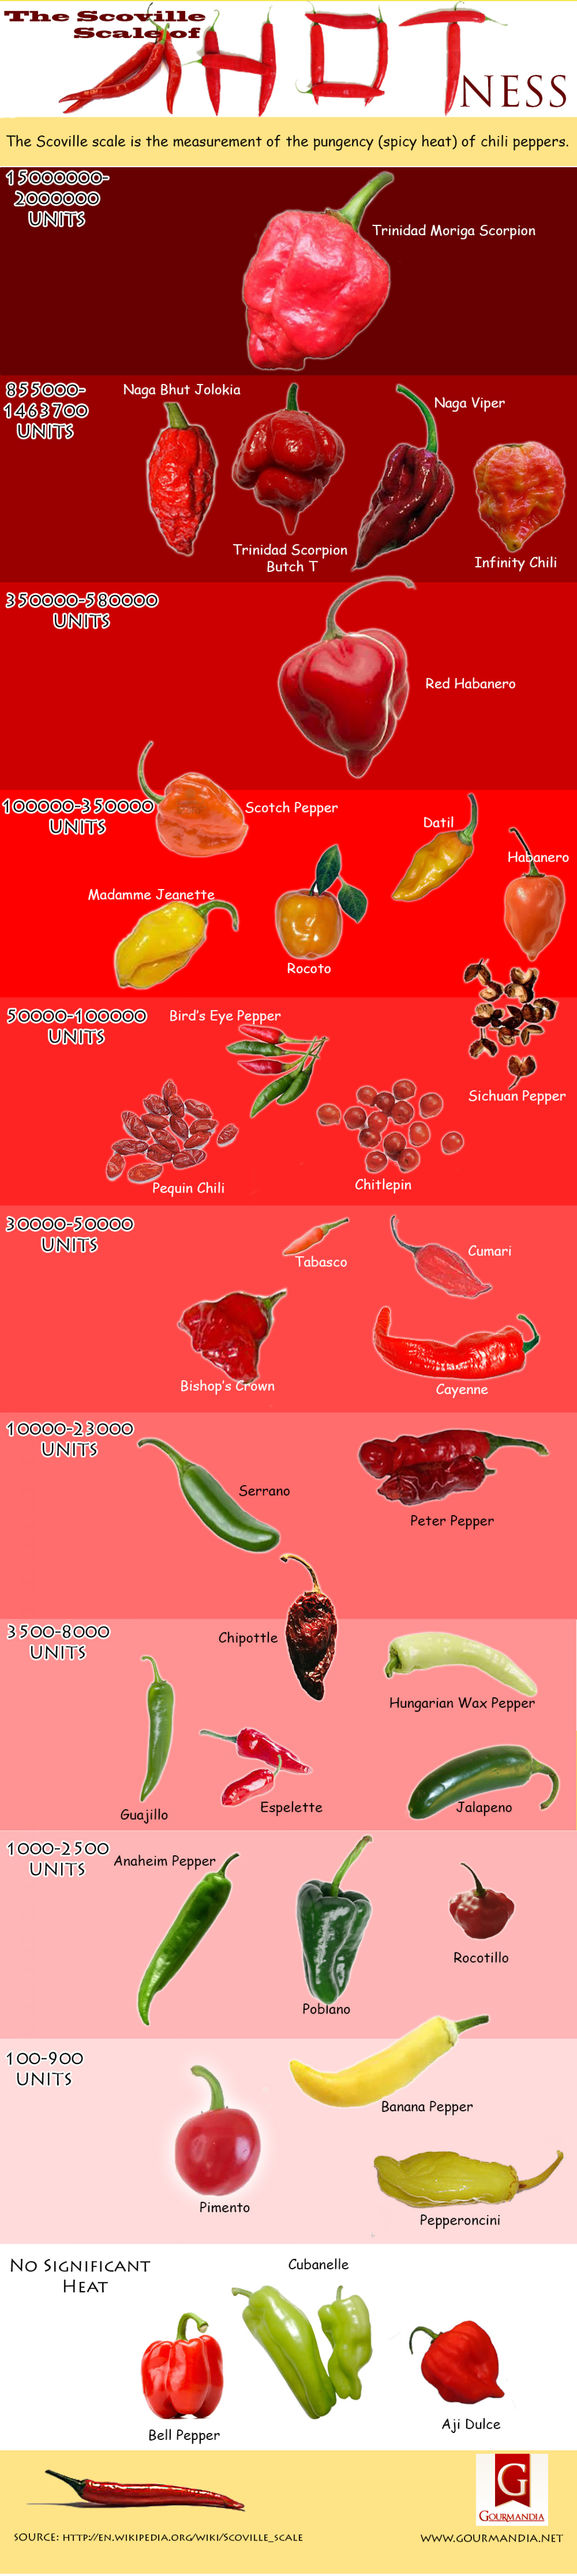 The Scoville Scale of Hotness Infographic